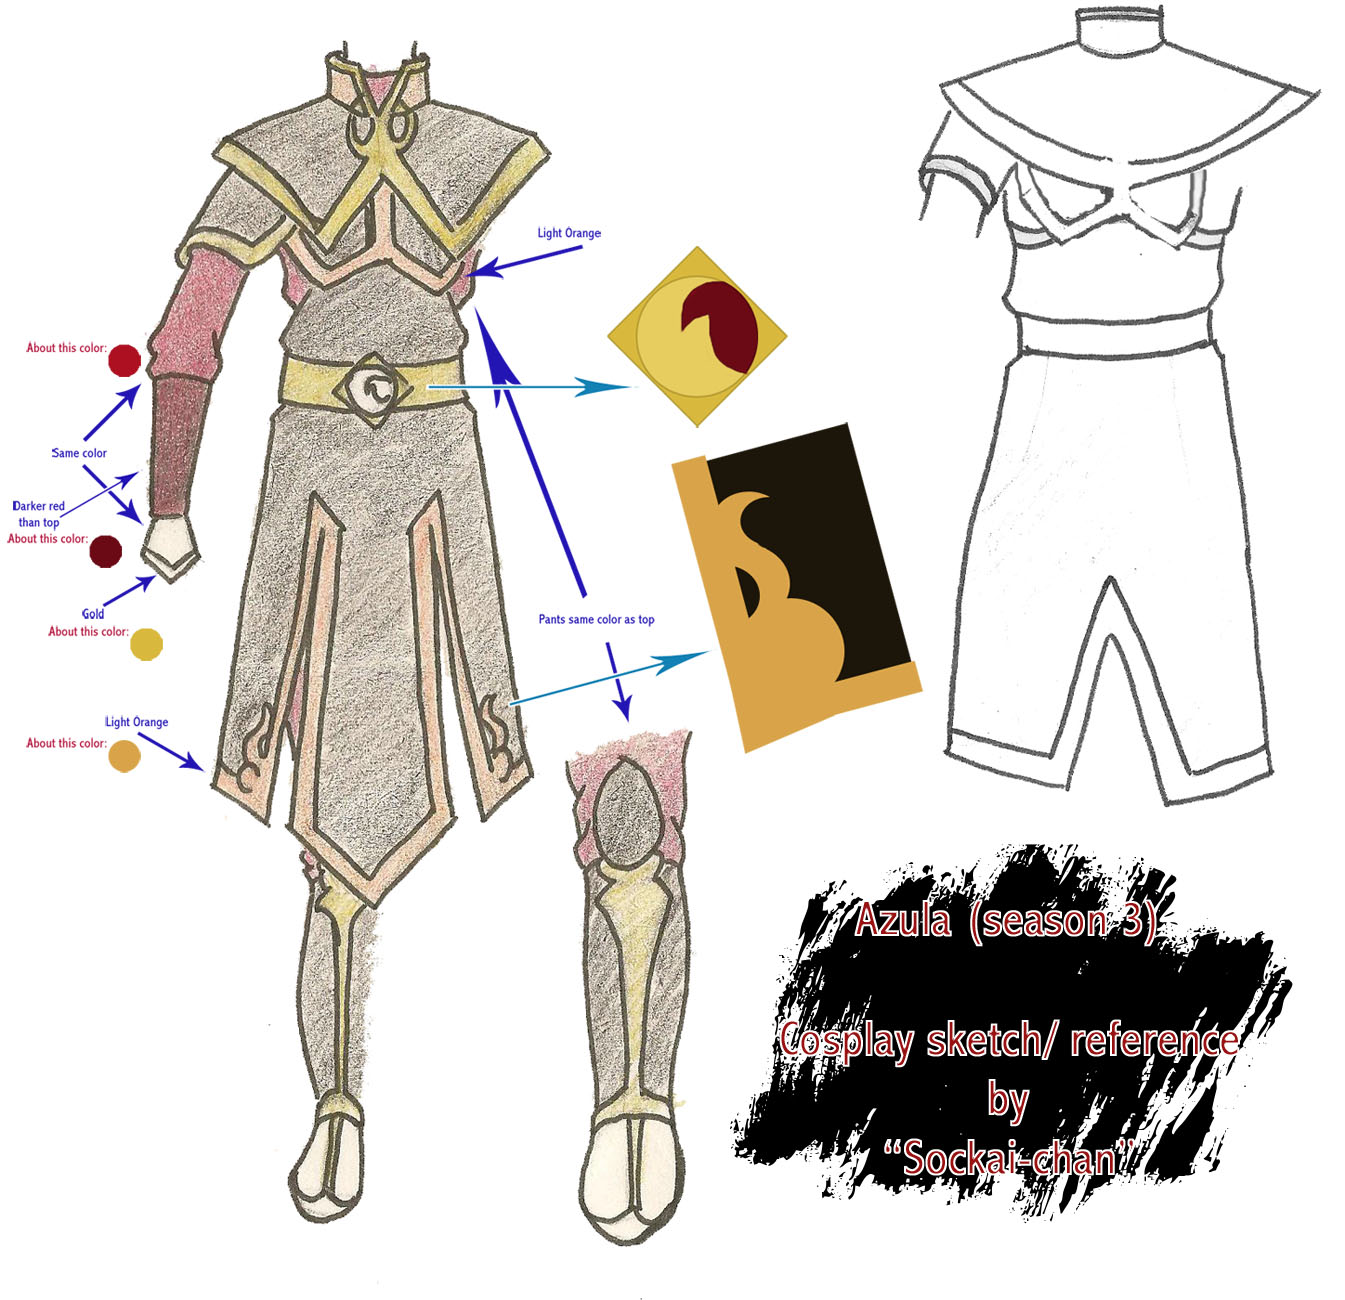 Azula season 3 outfit sketch by sockaichan on DeviantArt